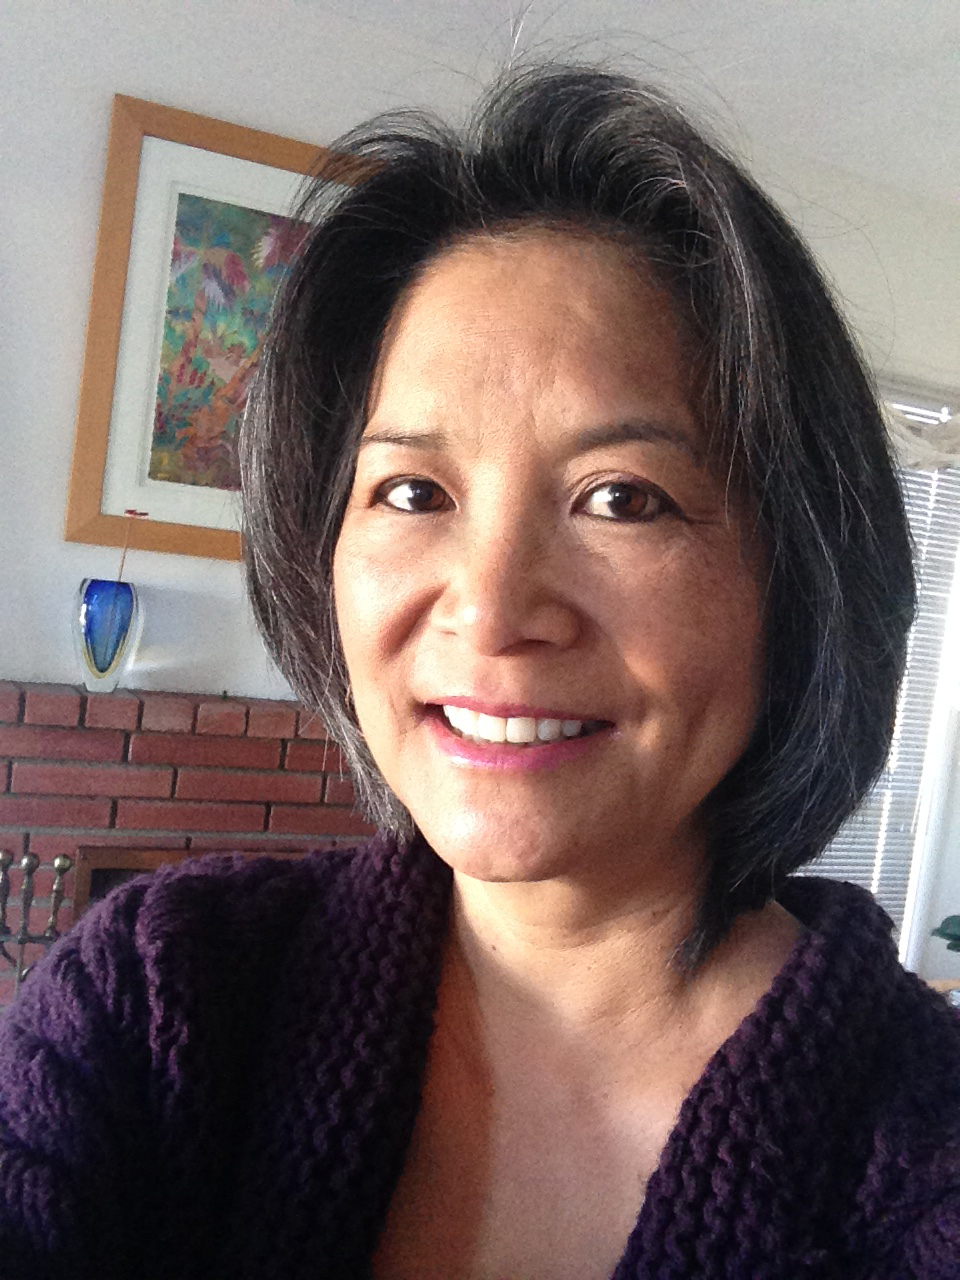 Denise Shiozawa is the founder and owner of UmeWorks website design and marketing